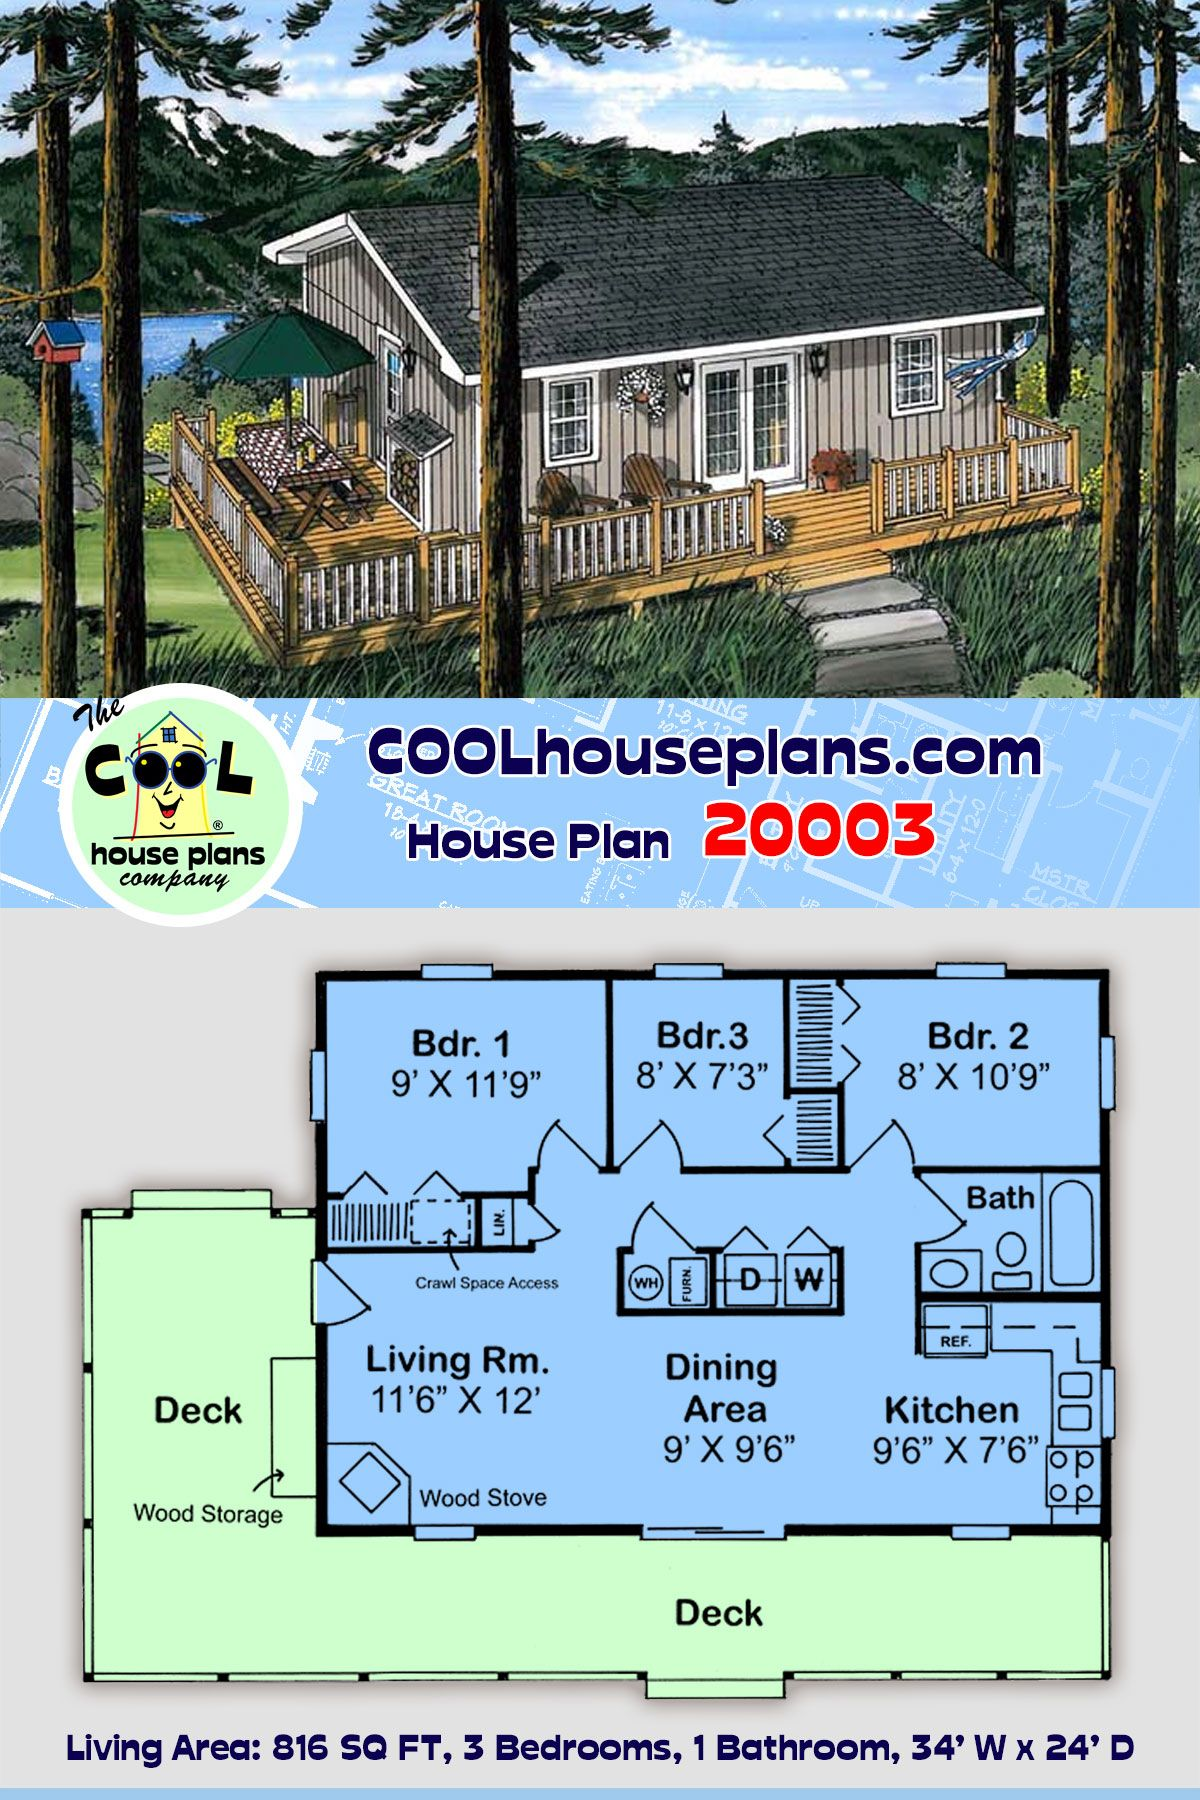 Traditional Style House Plan 20003 With 3 Bed 1 Bath Lake House Plans Beach House Floor Plans Vacation House Plans